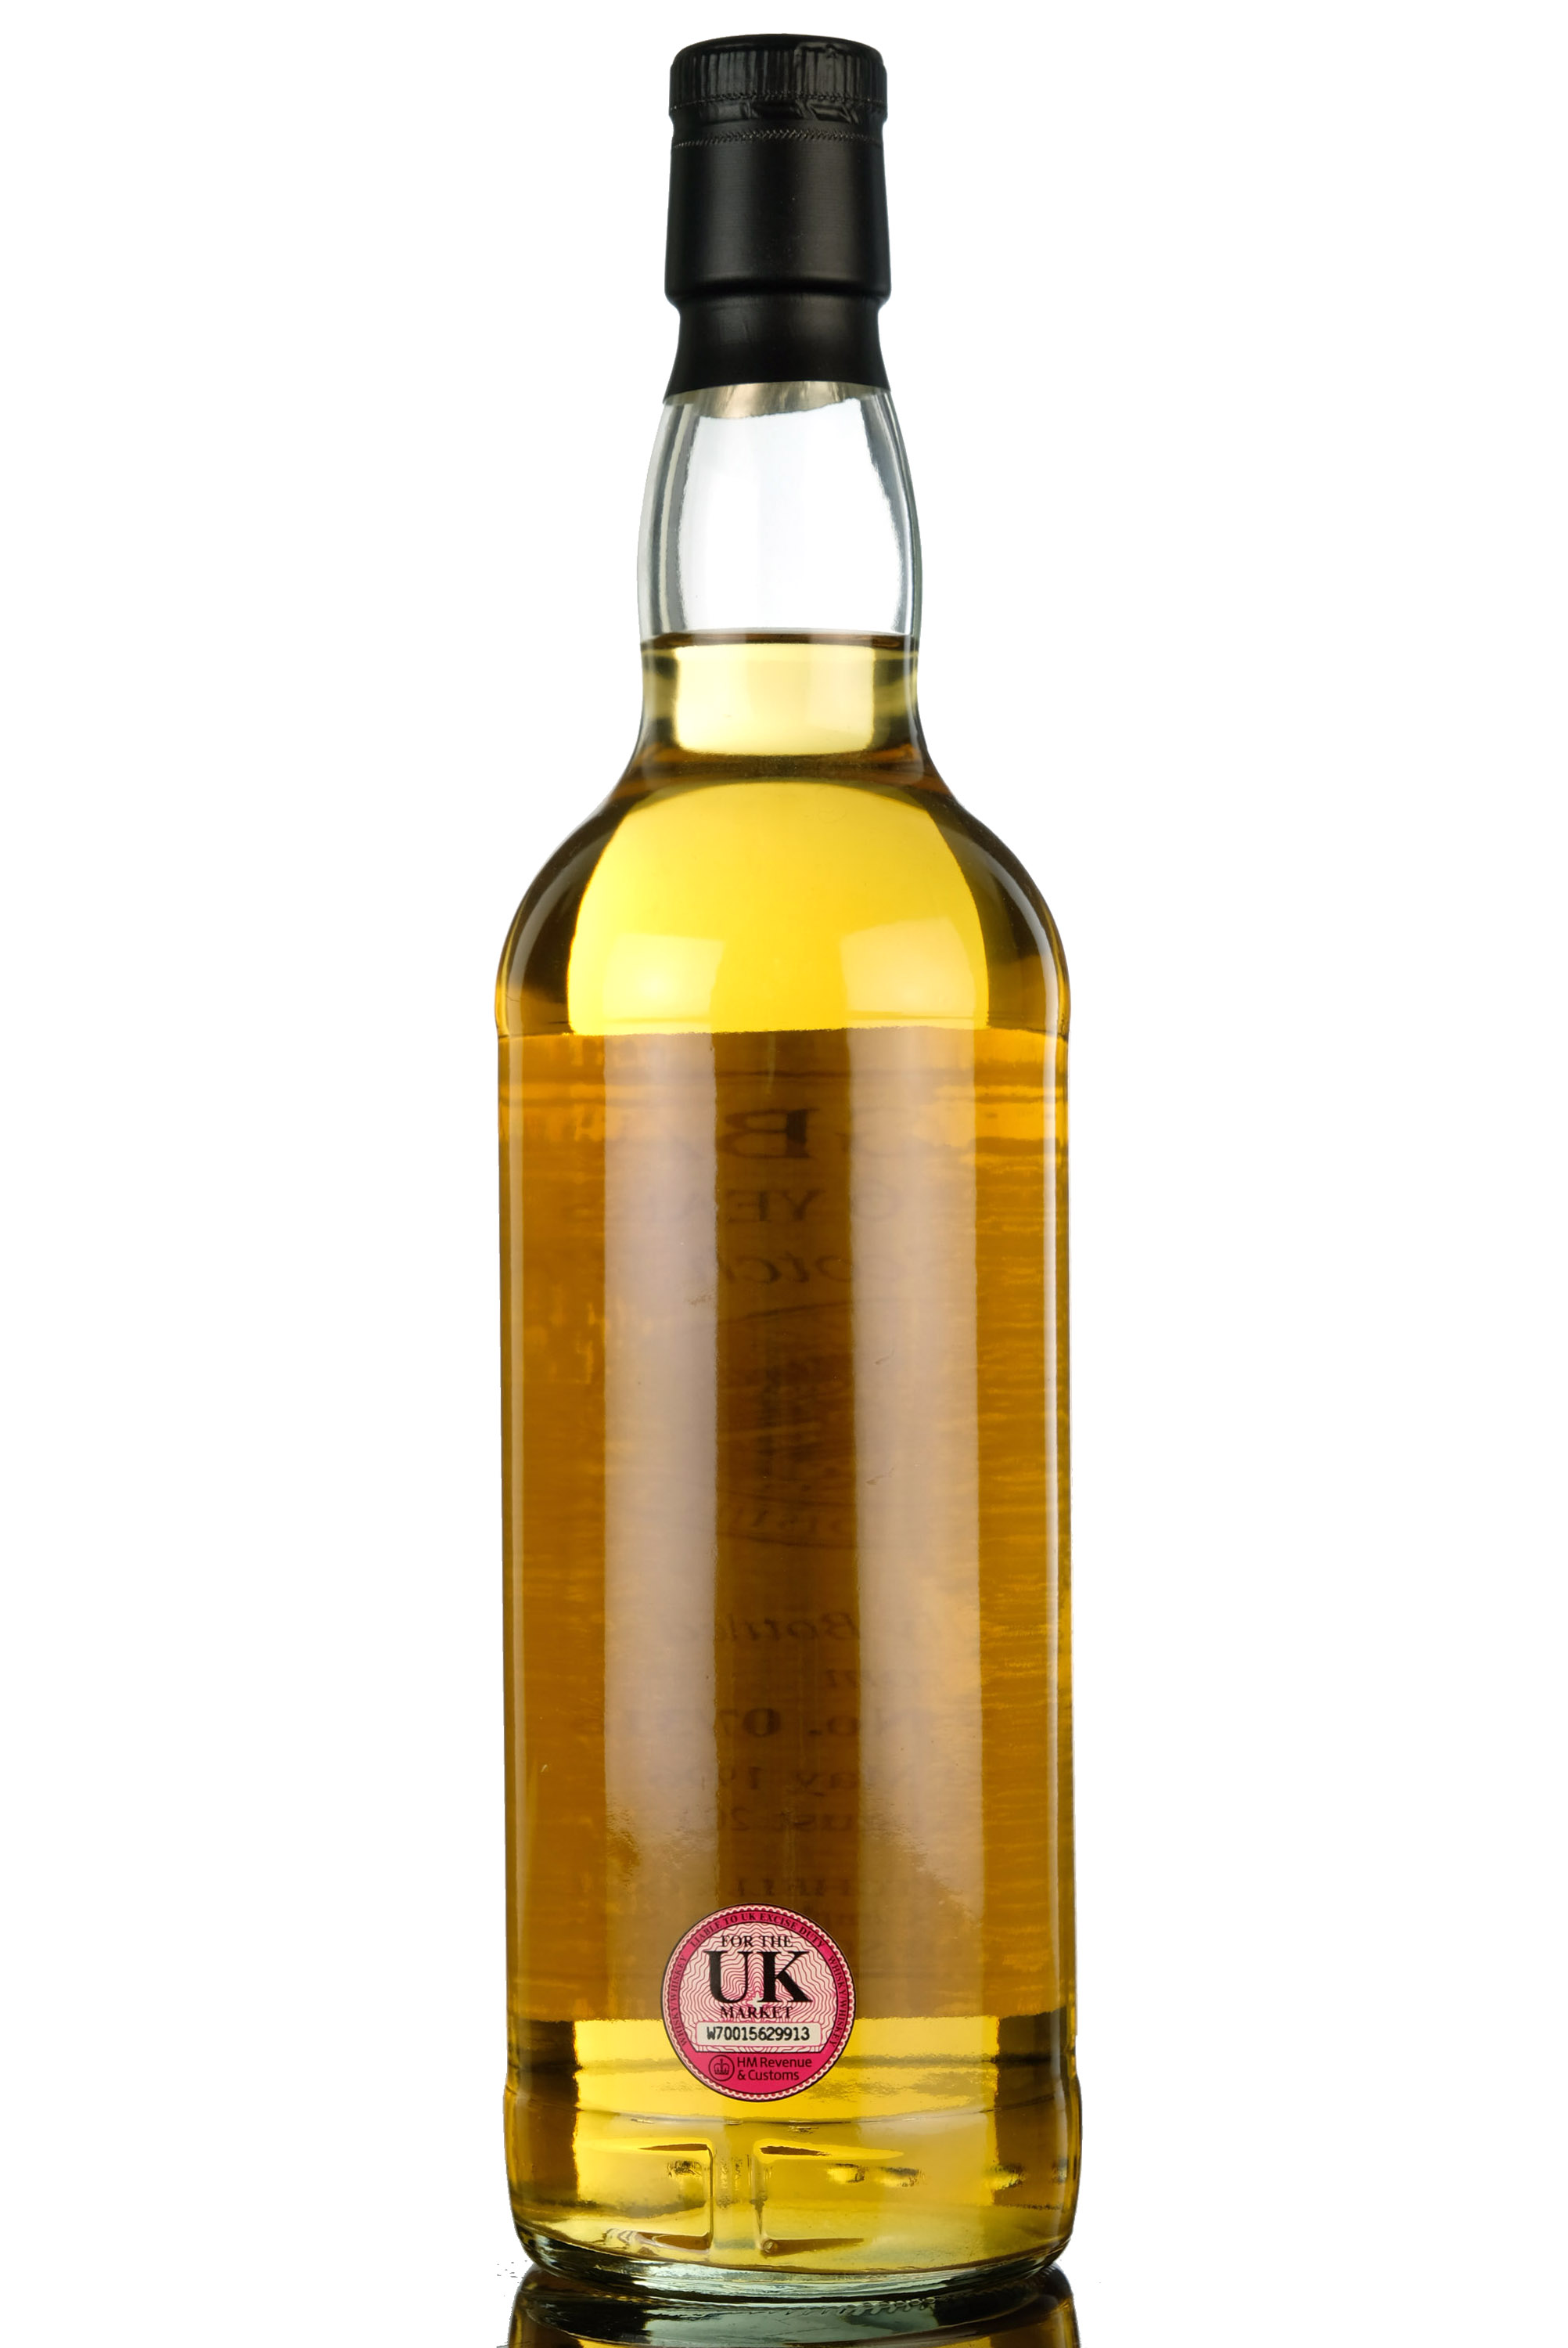 springbank 1996-2012 - 16 year old - private single cask 07/318-21